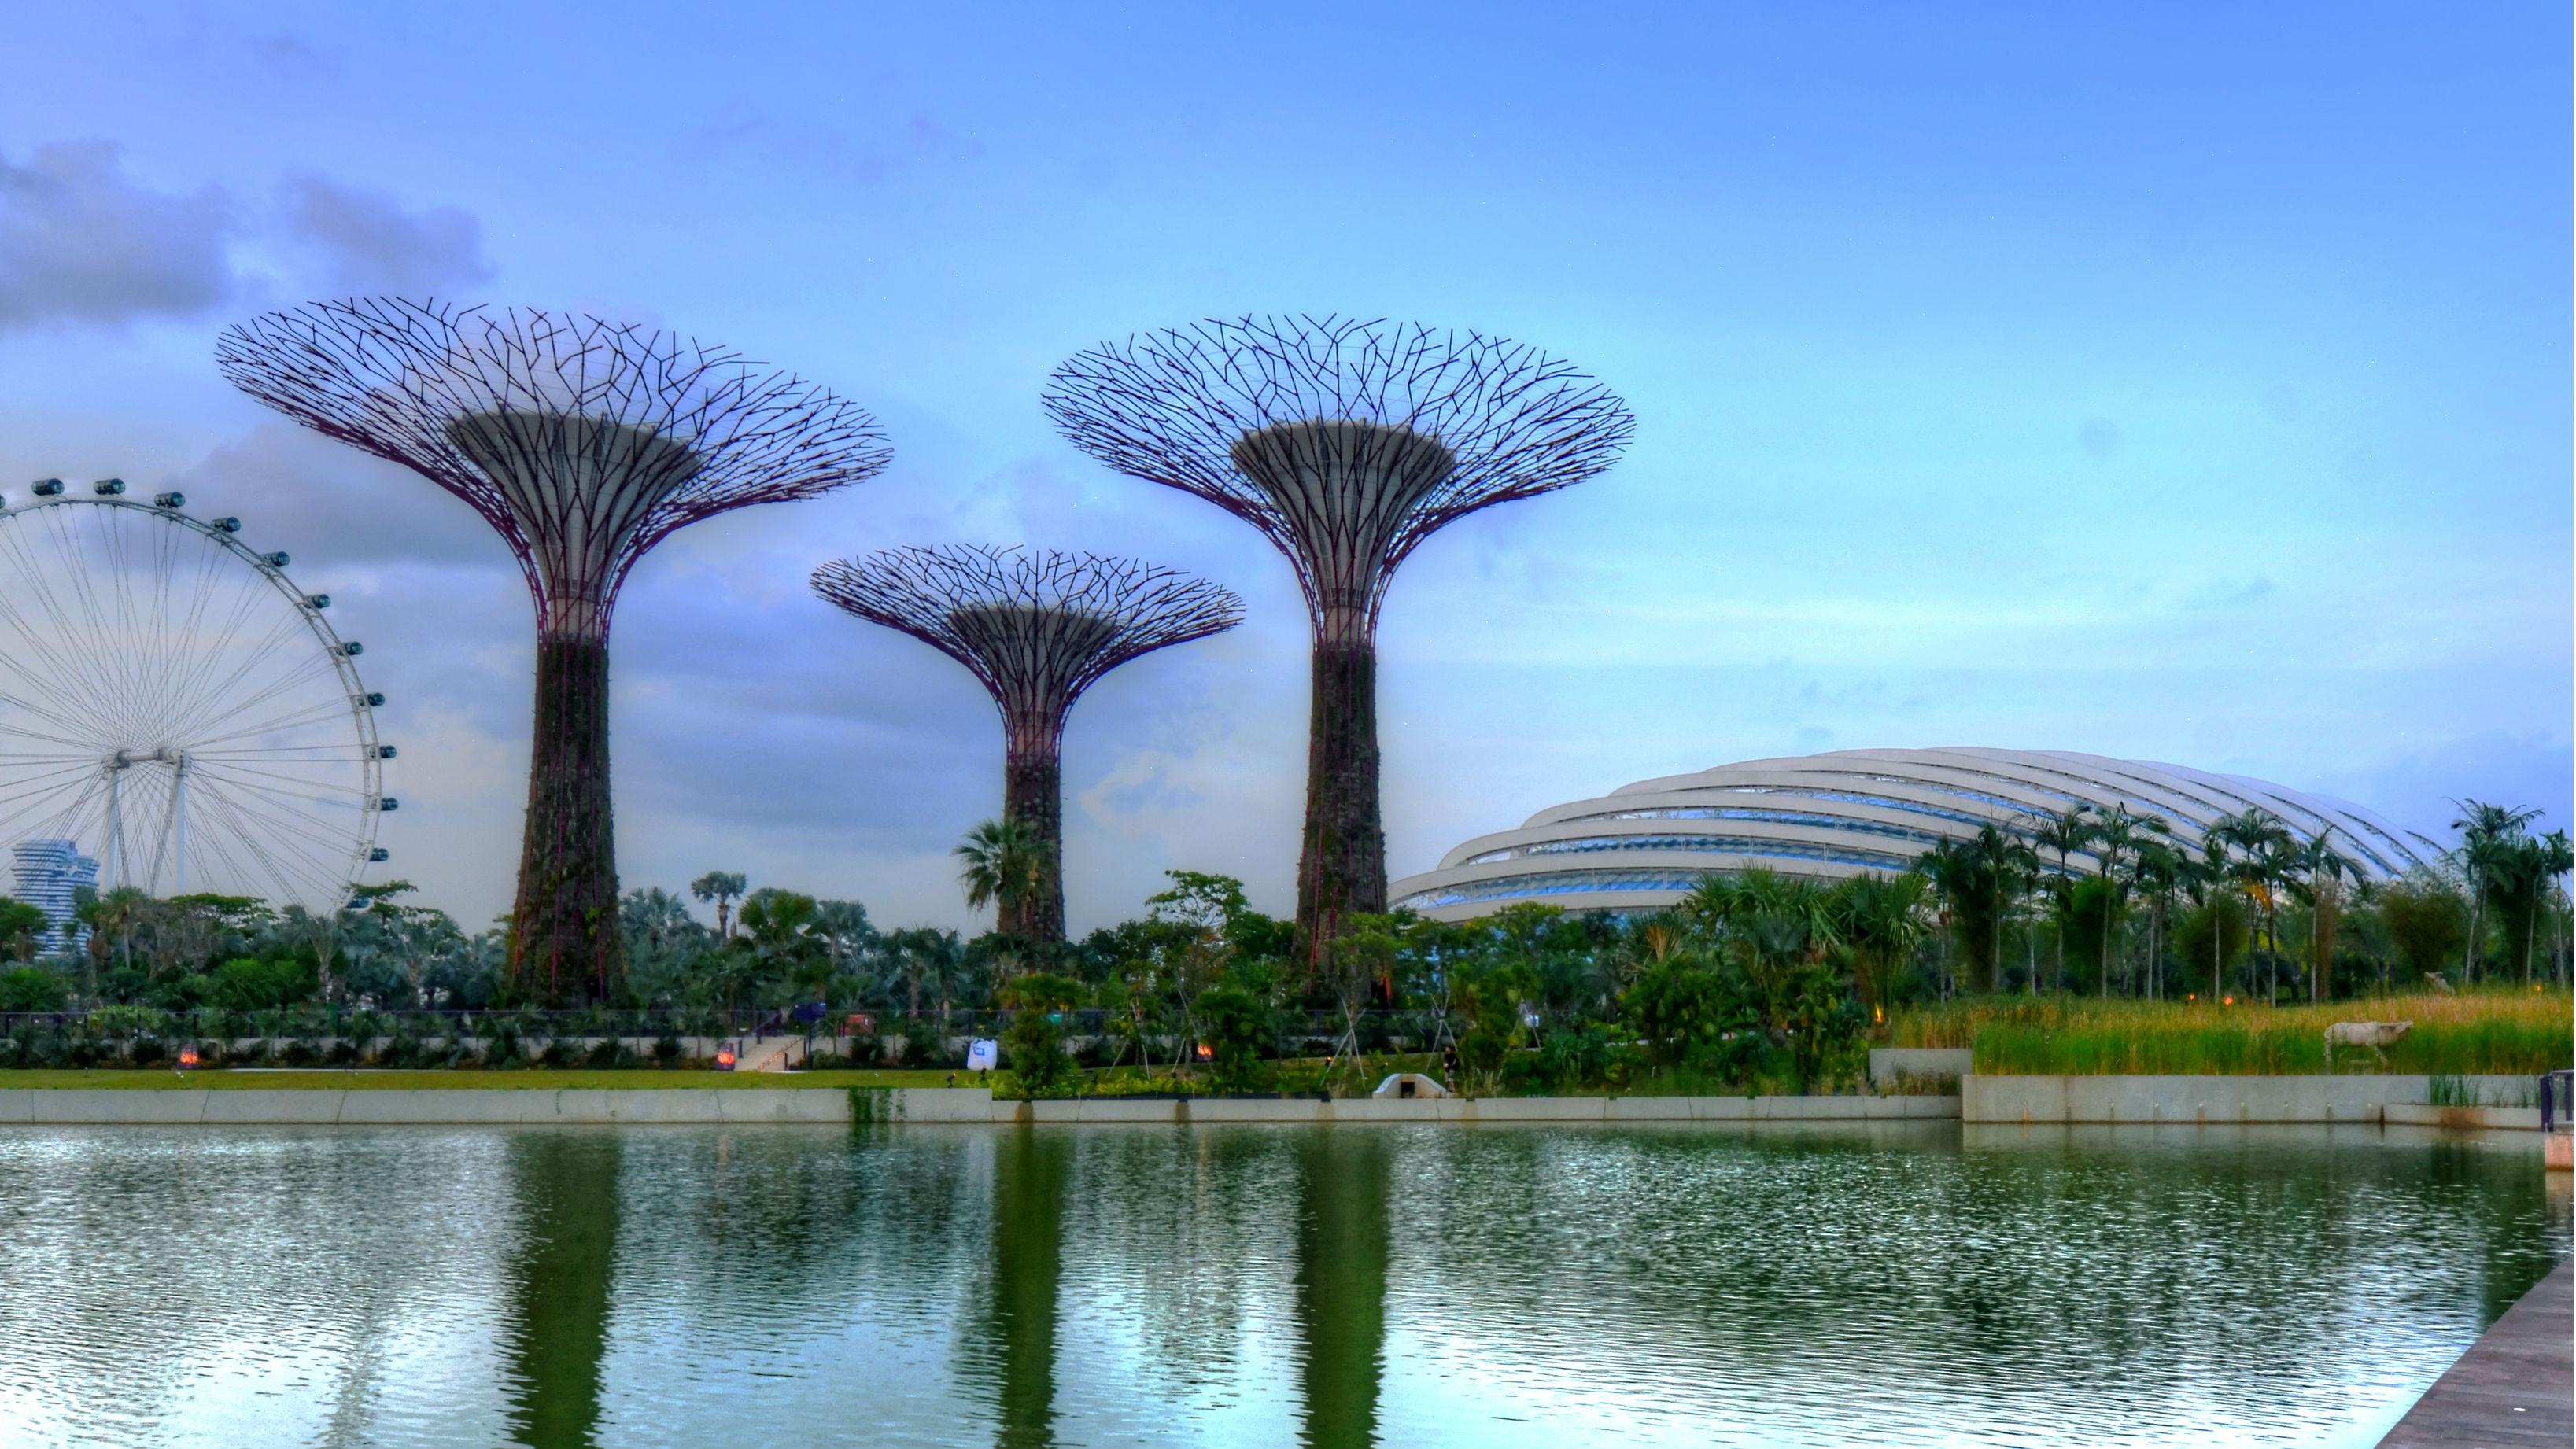 Gardens by the Bay and Singapore Flyer